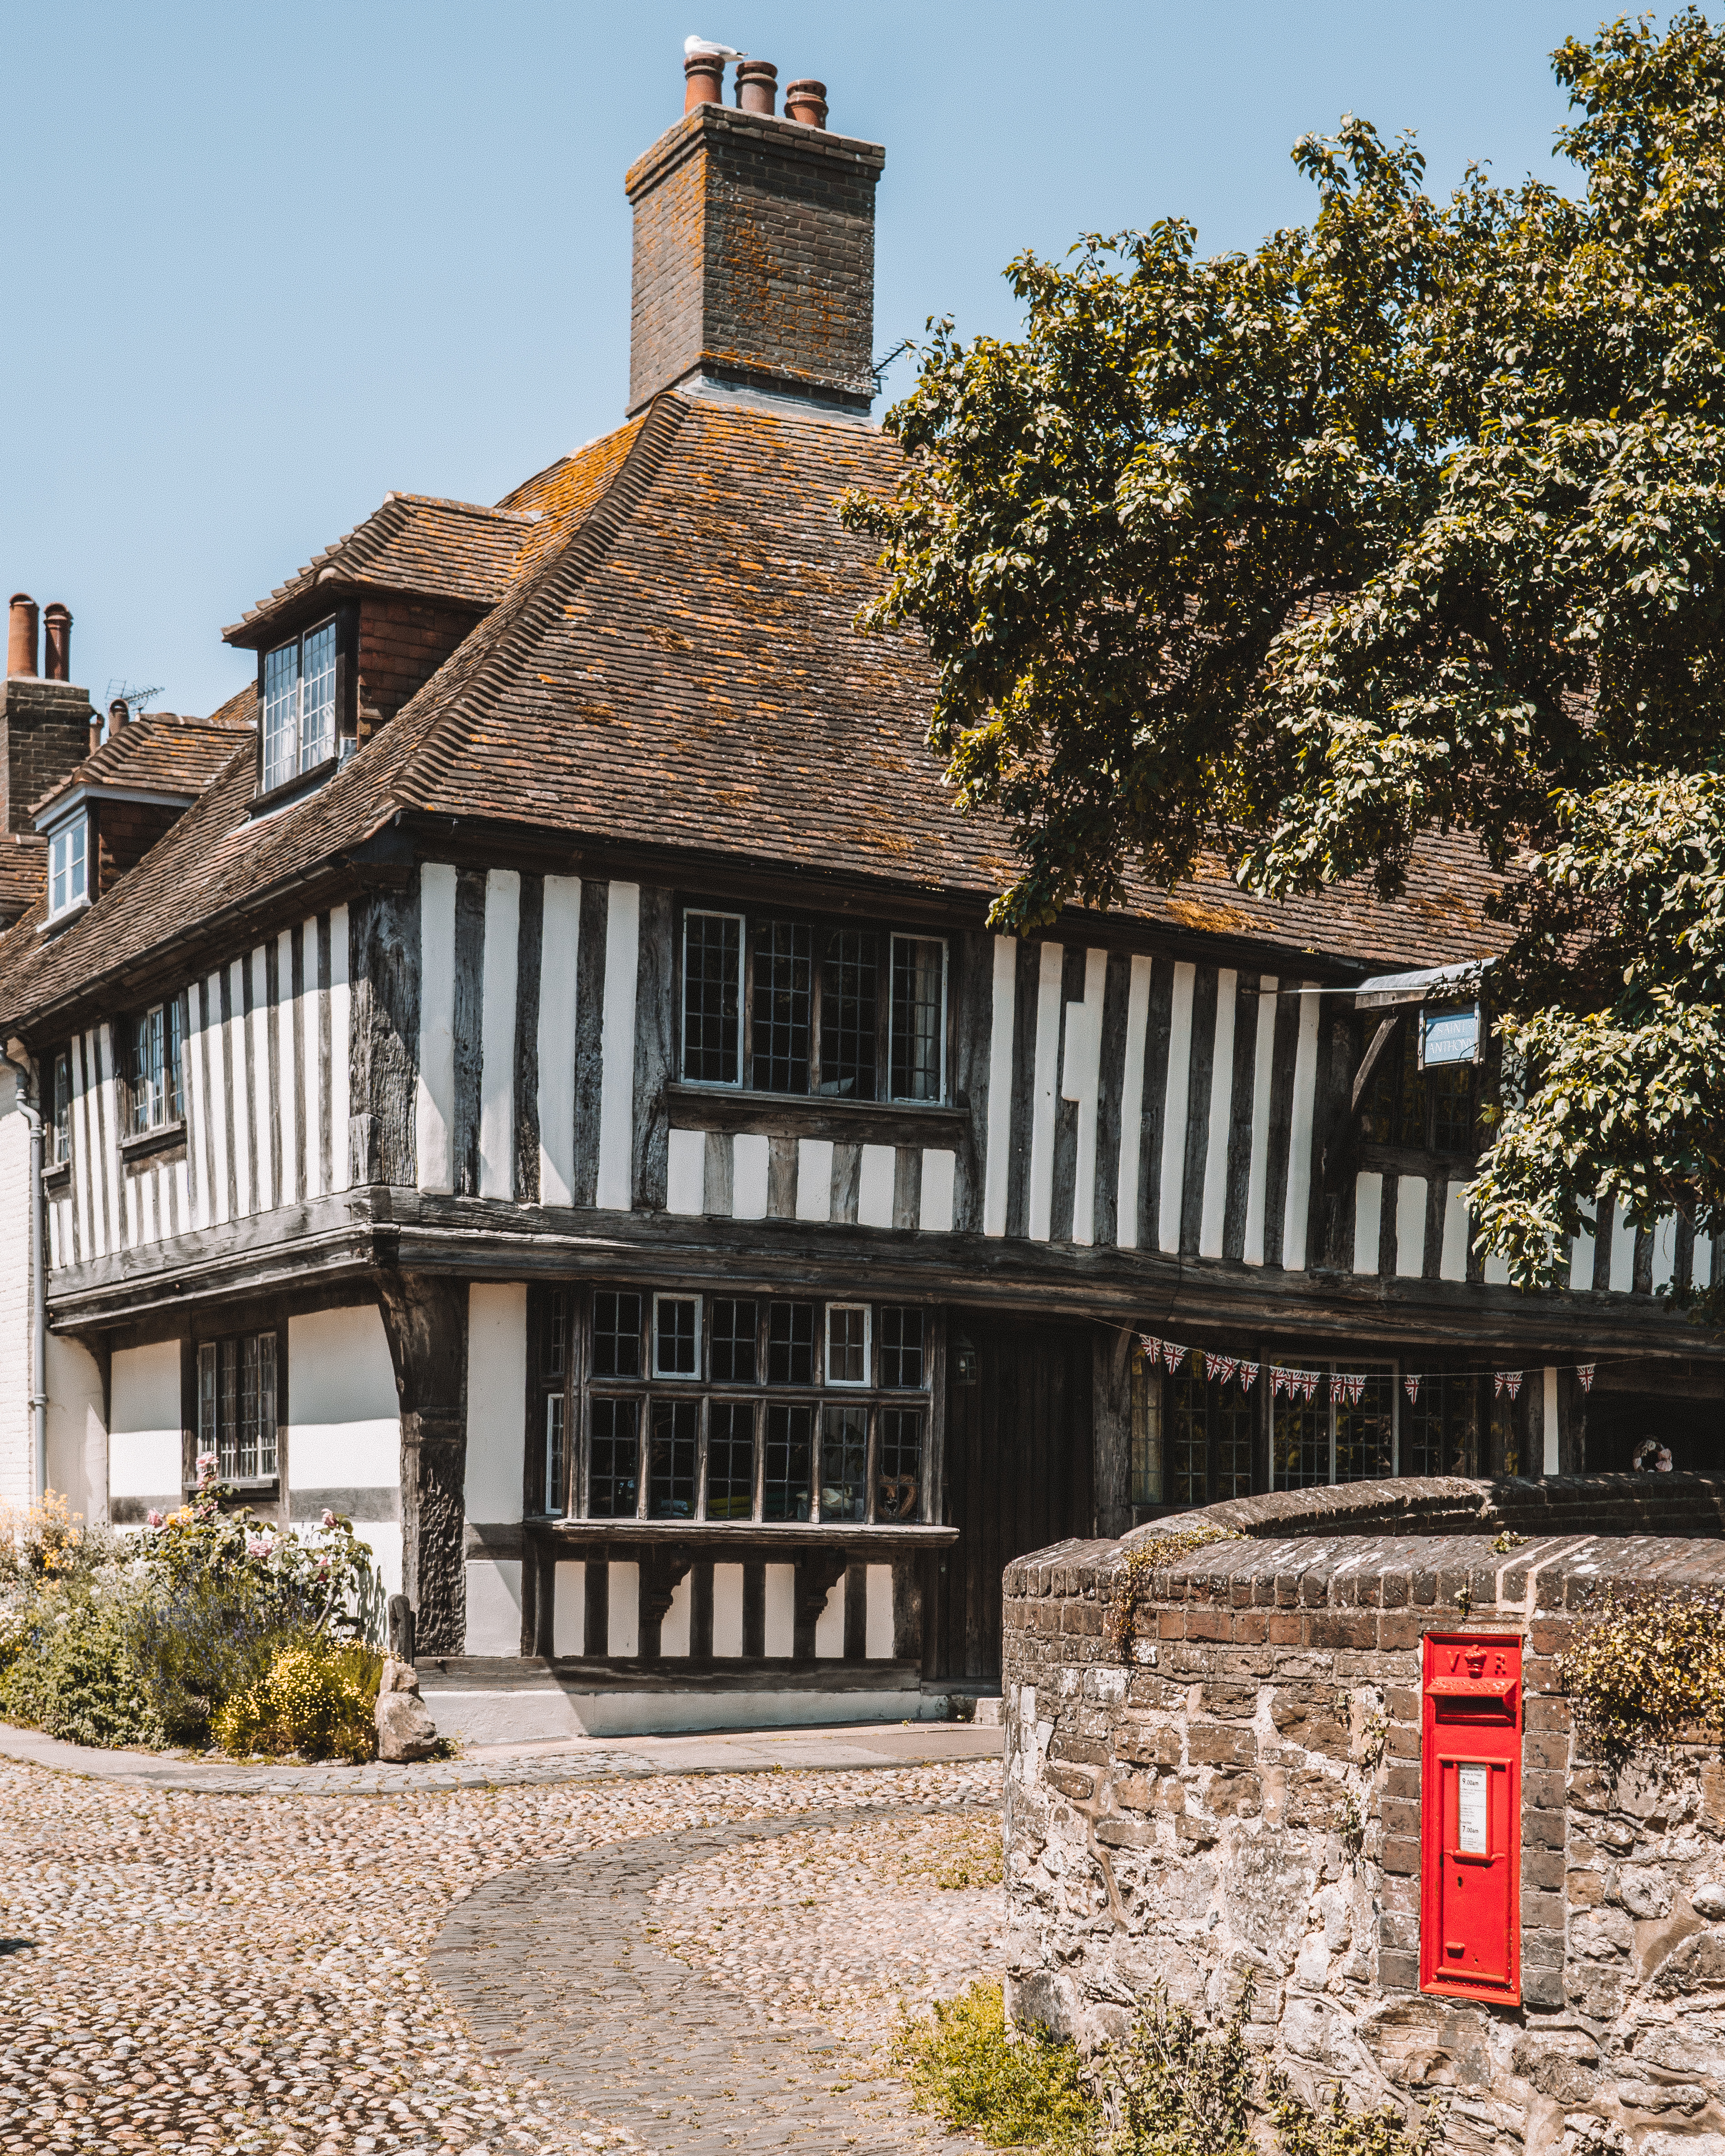 Top 5 Day Trips From London | Rye